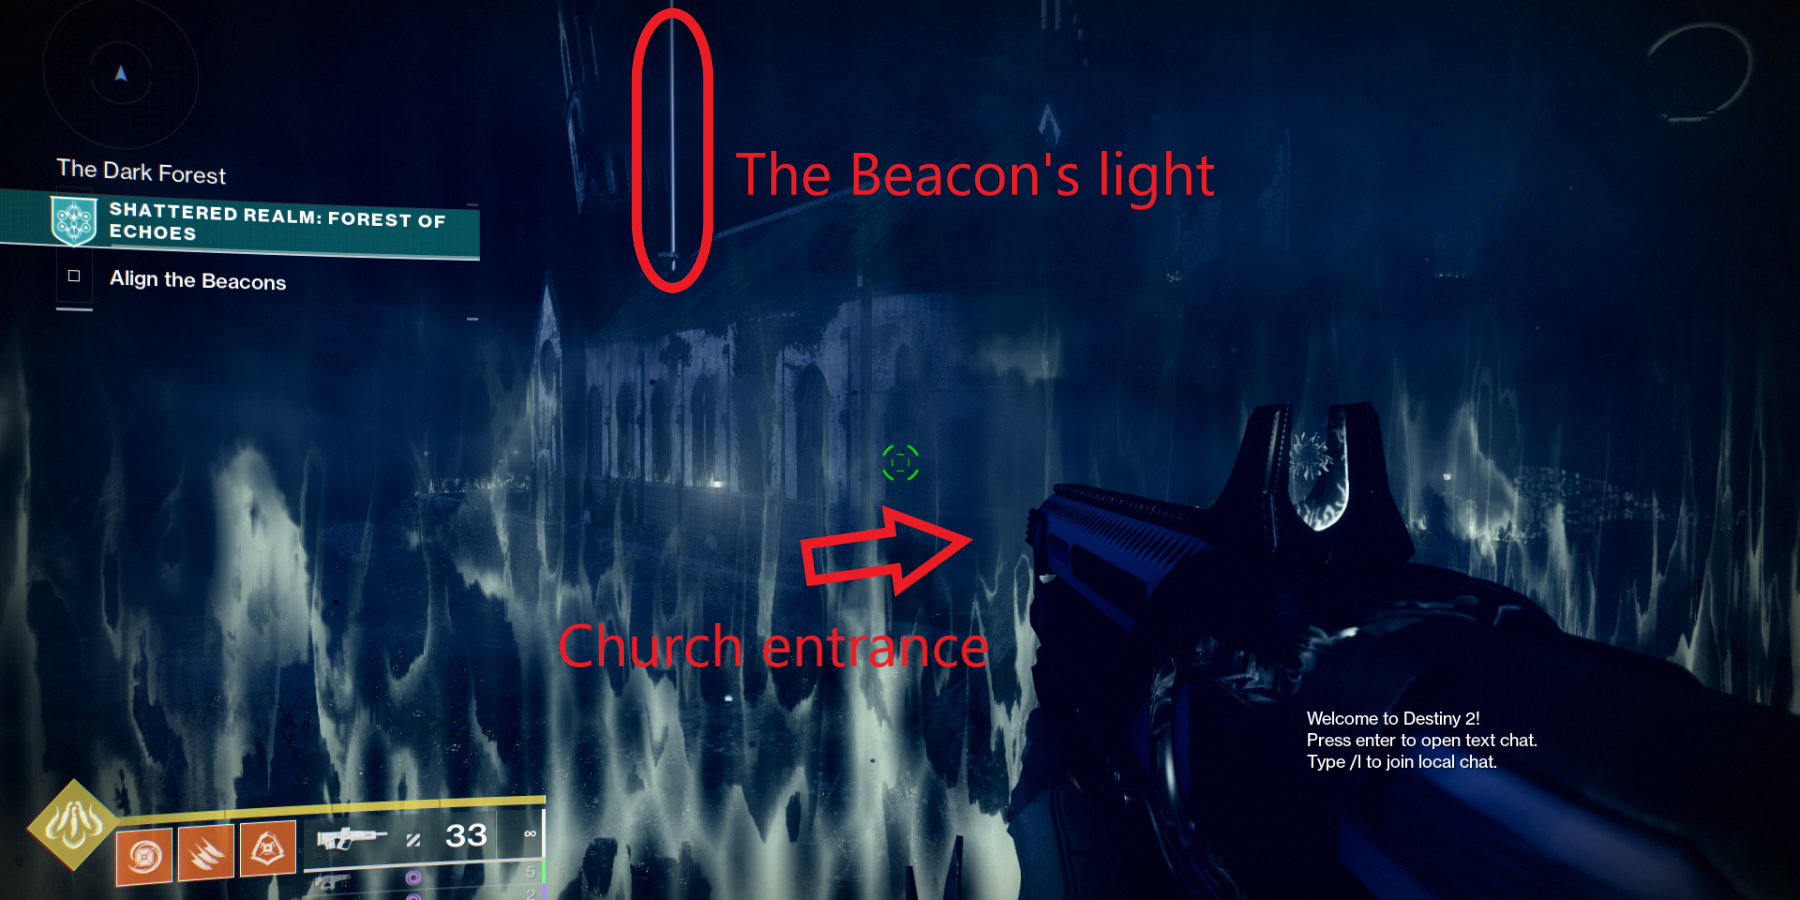 Destiny 2: How to Align the Beacons (Shattered Realm Forest of Echoes)